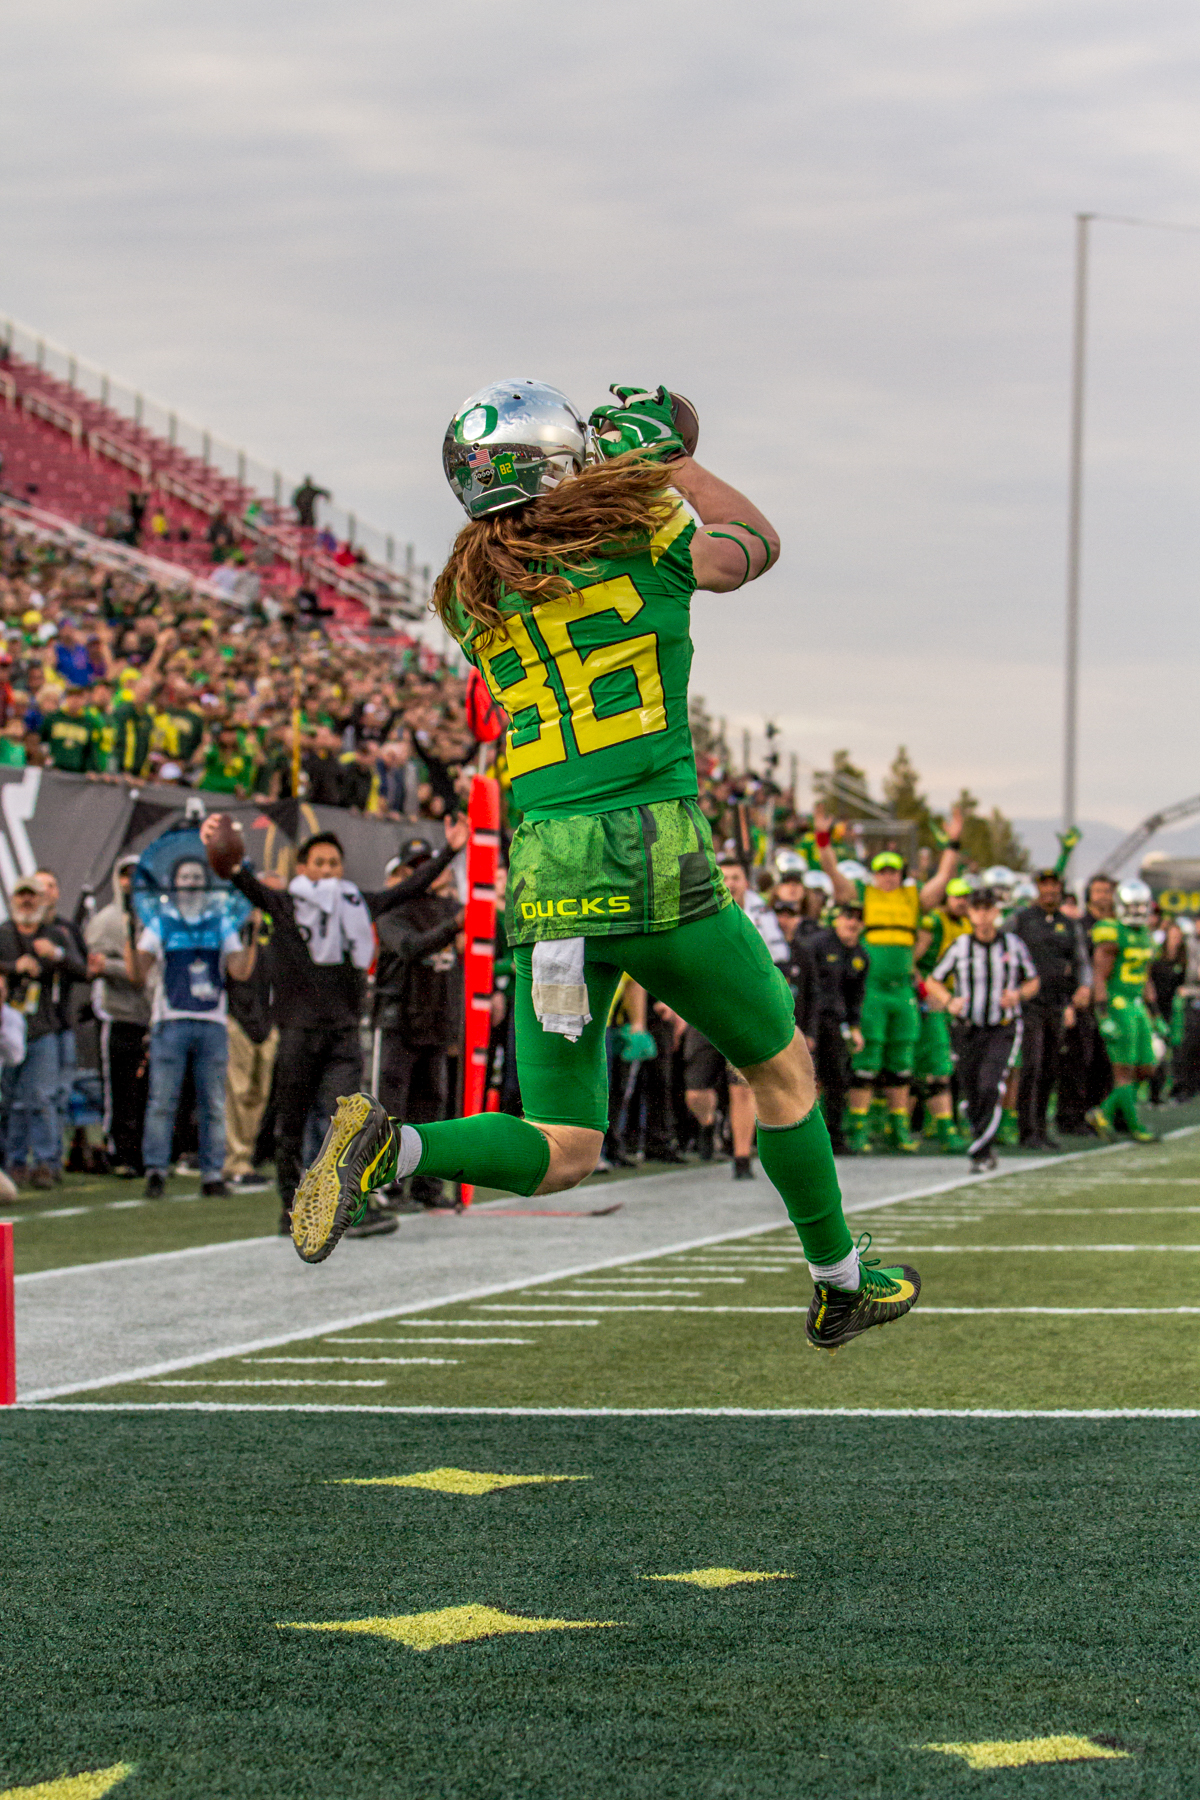 Oregon wide receiver Brendan Schooler (#86) catches a touchdown pass in the endzone. The Boise State Broncos defeated the Oregon Ducks 38 to 28 in the 2017 Las Vegas Bowl at Sam Boyd Stadium in Las Vegas, Nevada on Saturday December 17, 2017. The Las Vegas Bowl served as the first test for Oregon's new Head Coach Mario Cristobal following the loss of former Head Coach Willie Taggart to Florida State University earlier this month. Photo by Ben Lonergan, Oregon News Lab